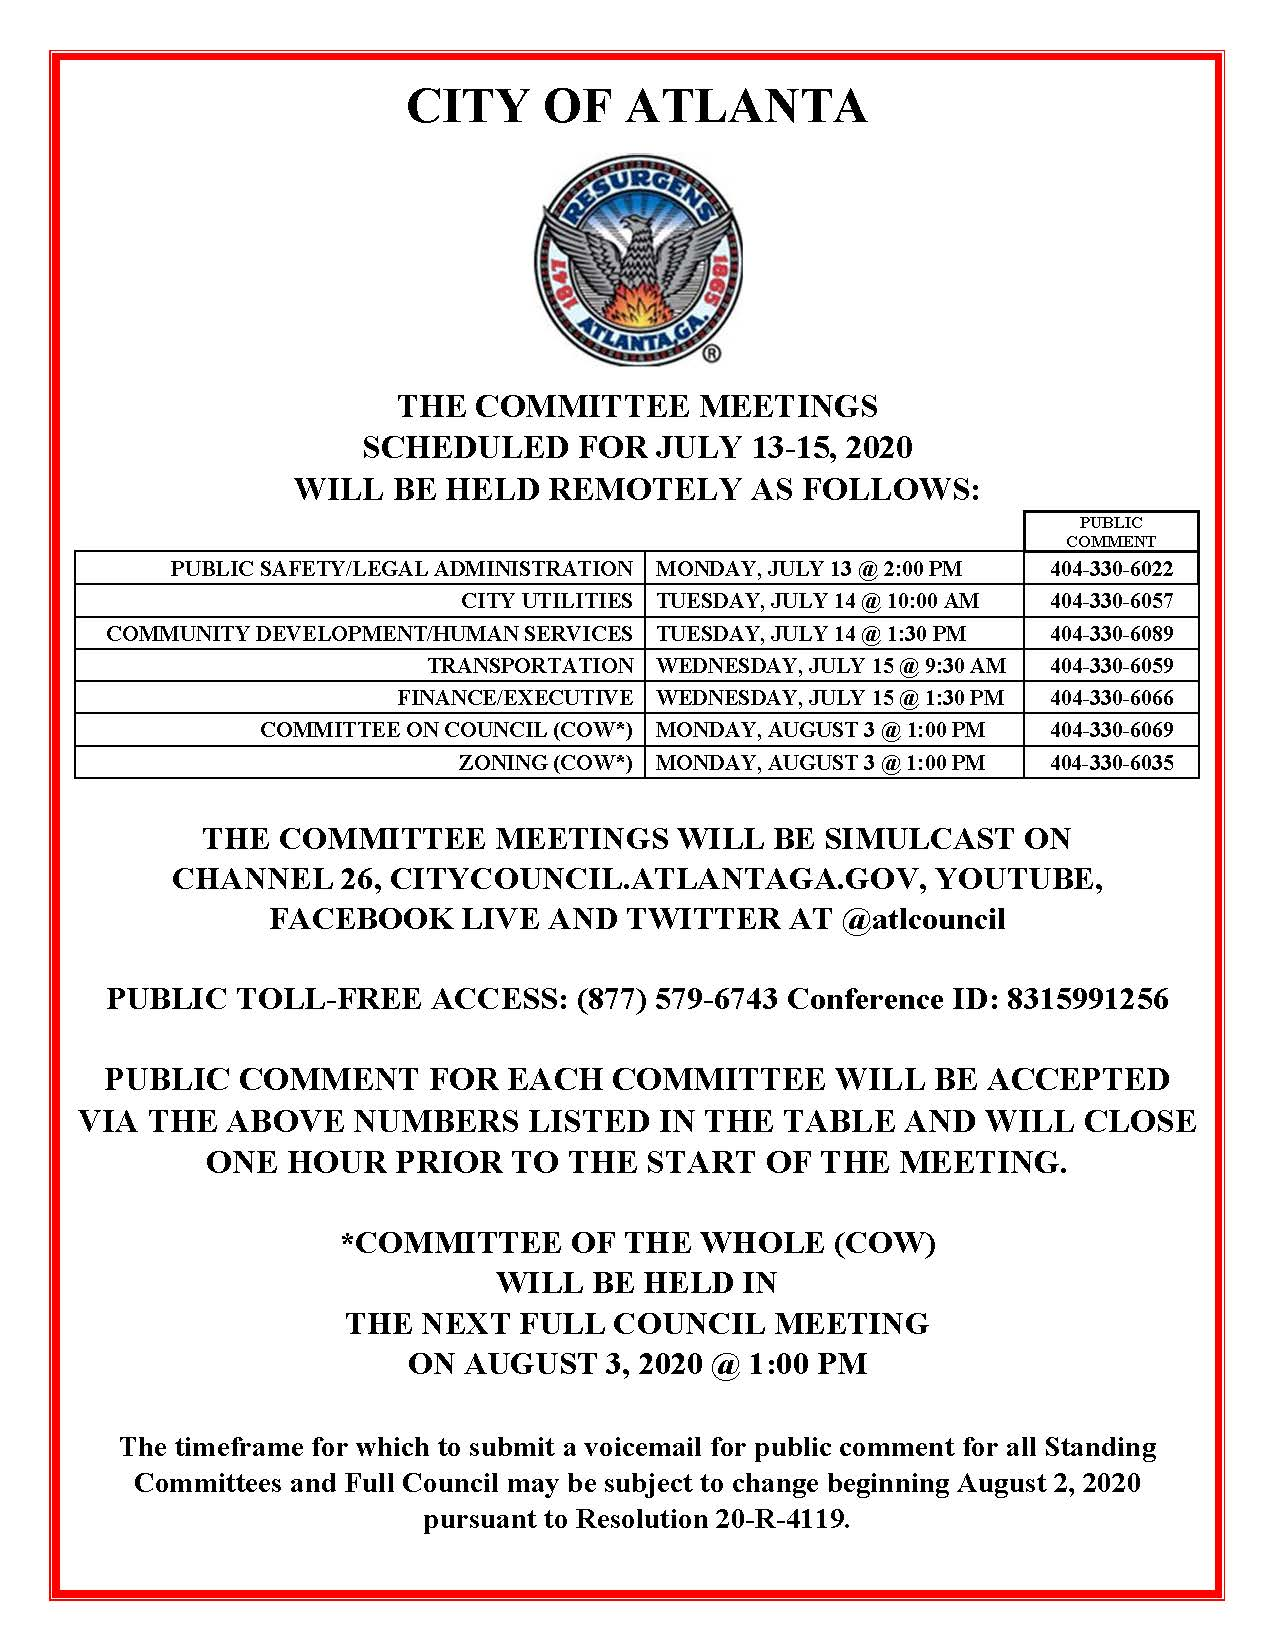 July 13-15 Committee Meetings Public Notice (Public) - REVISED